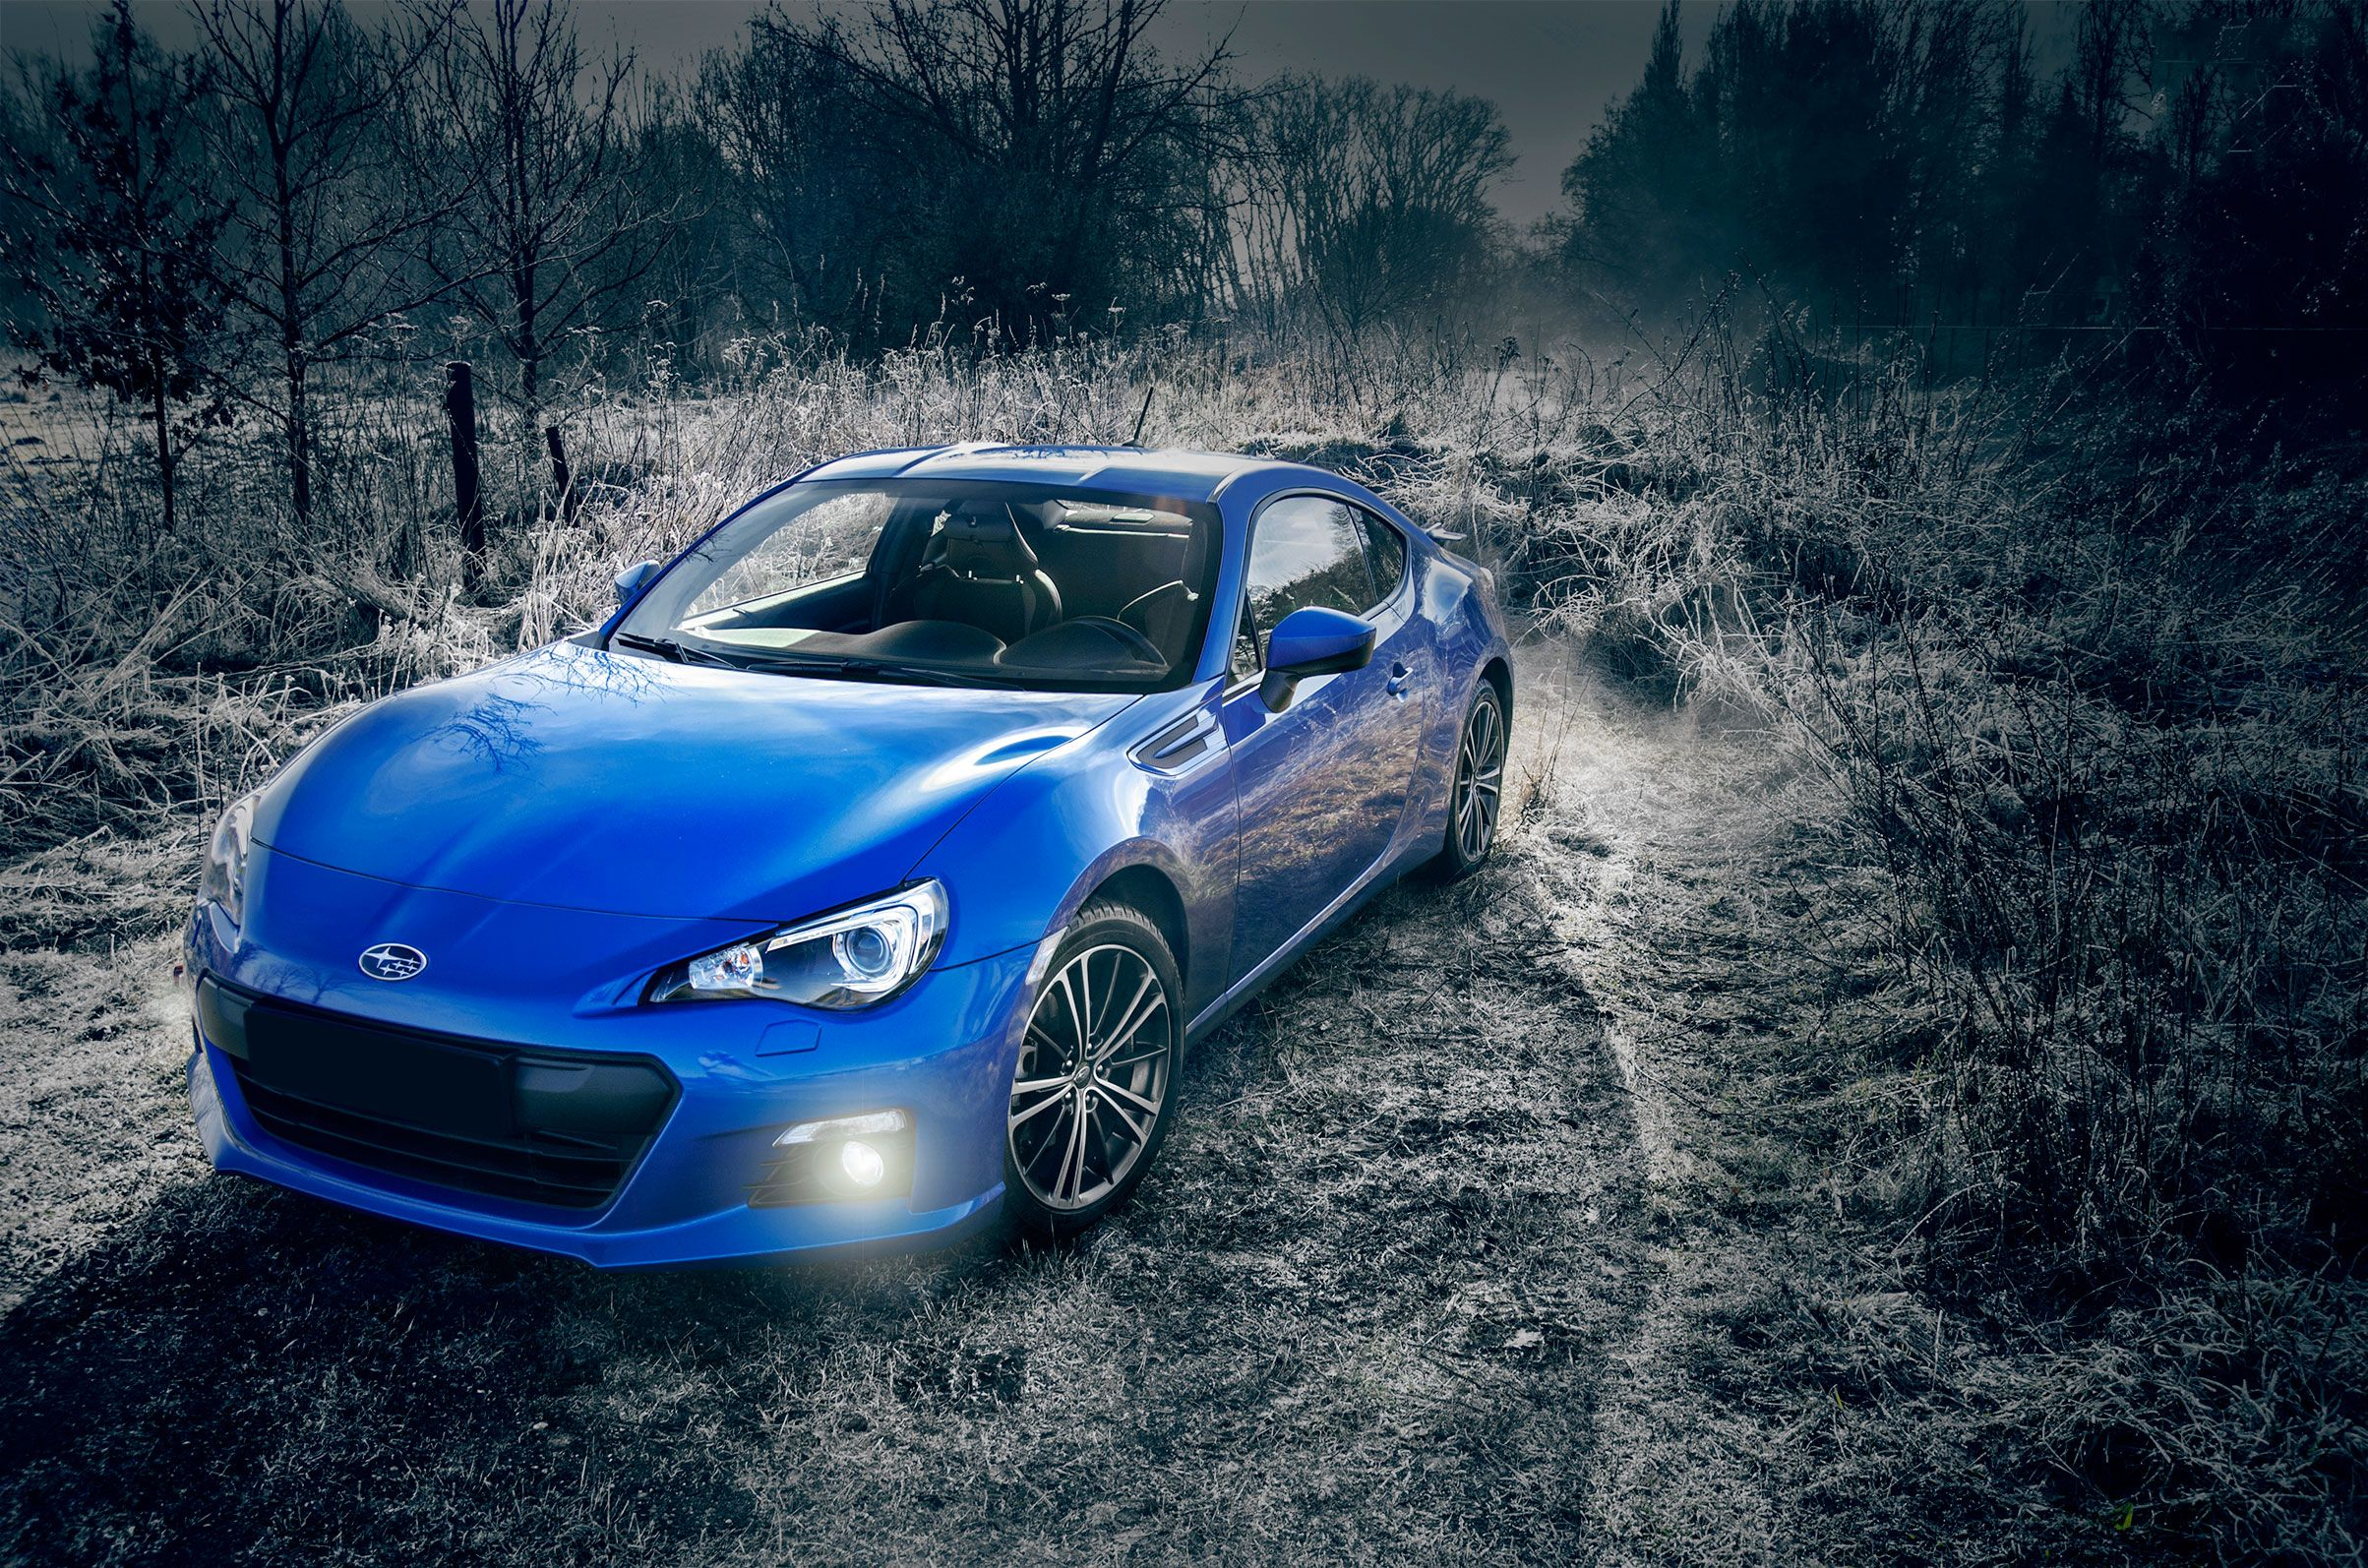 One of the best car from #Subaru - the #BRZ | Subaru brz, Engines for sale, Subaru